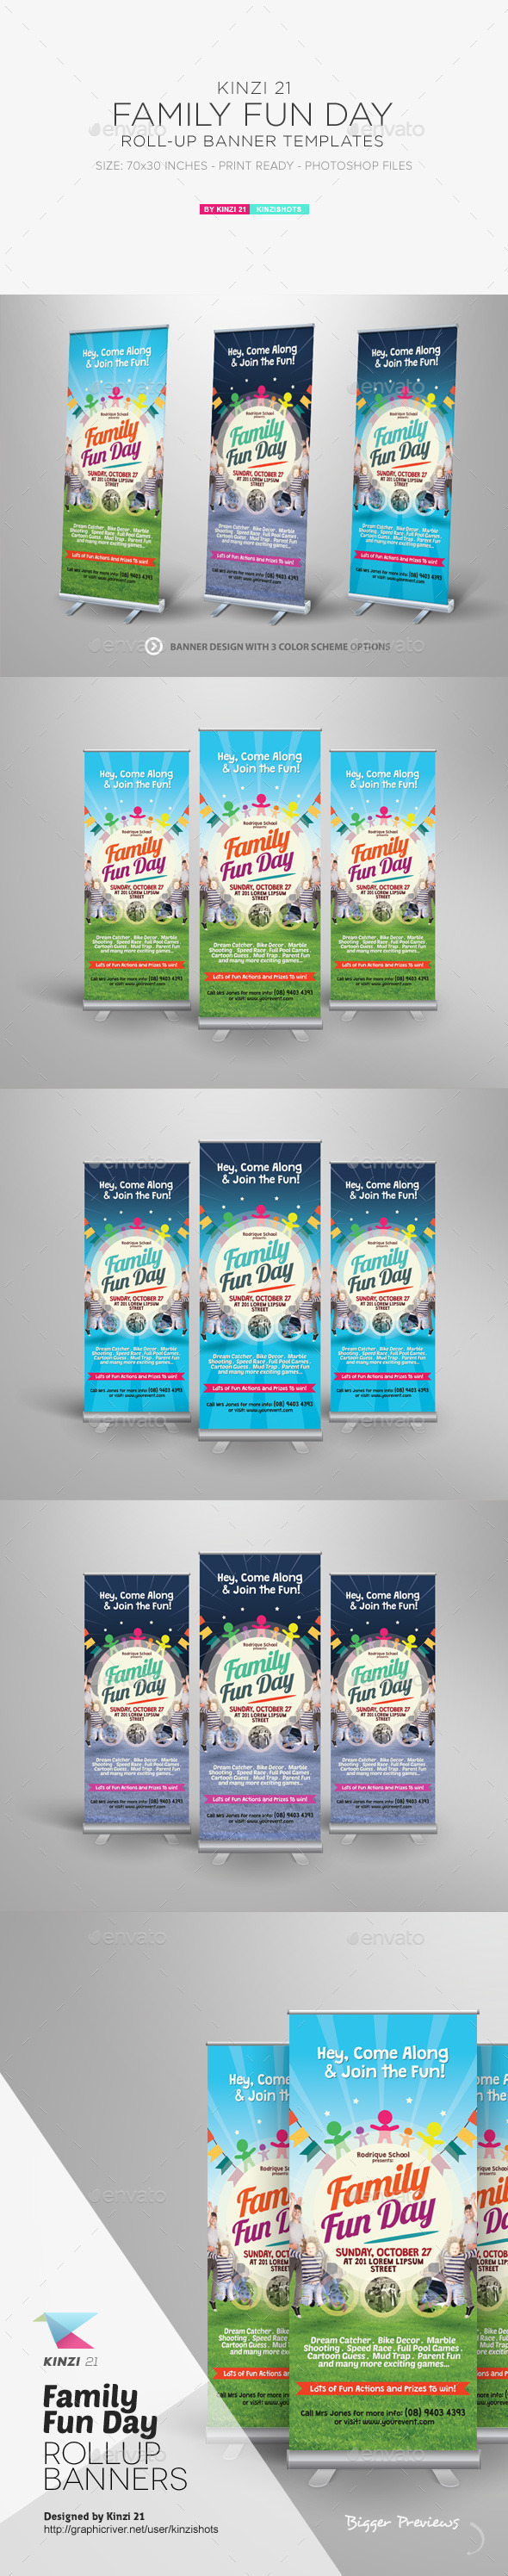 GraphicRiver Family Fun Day Roll-up Banners 11762412